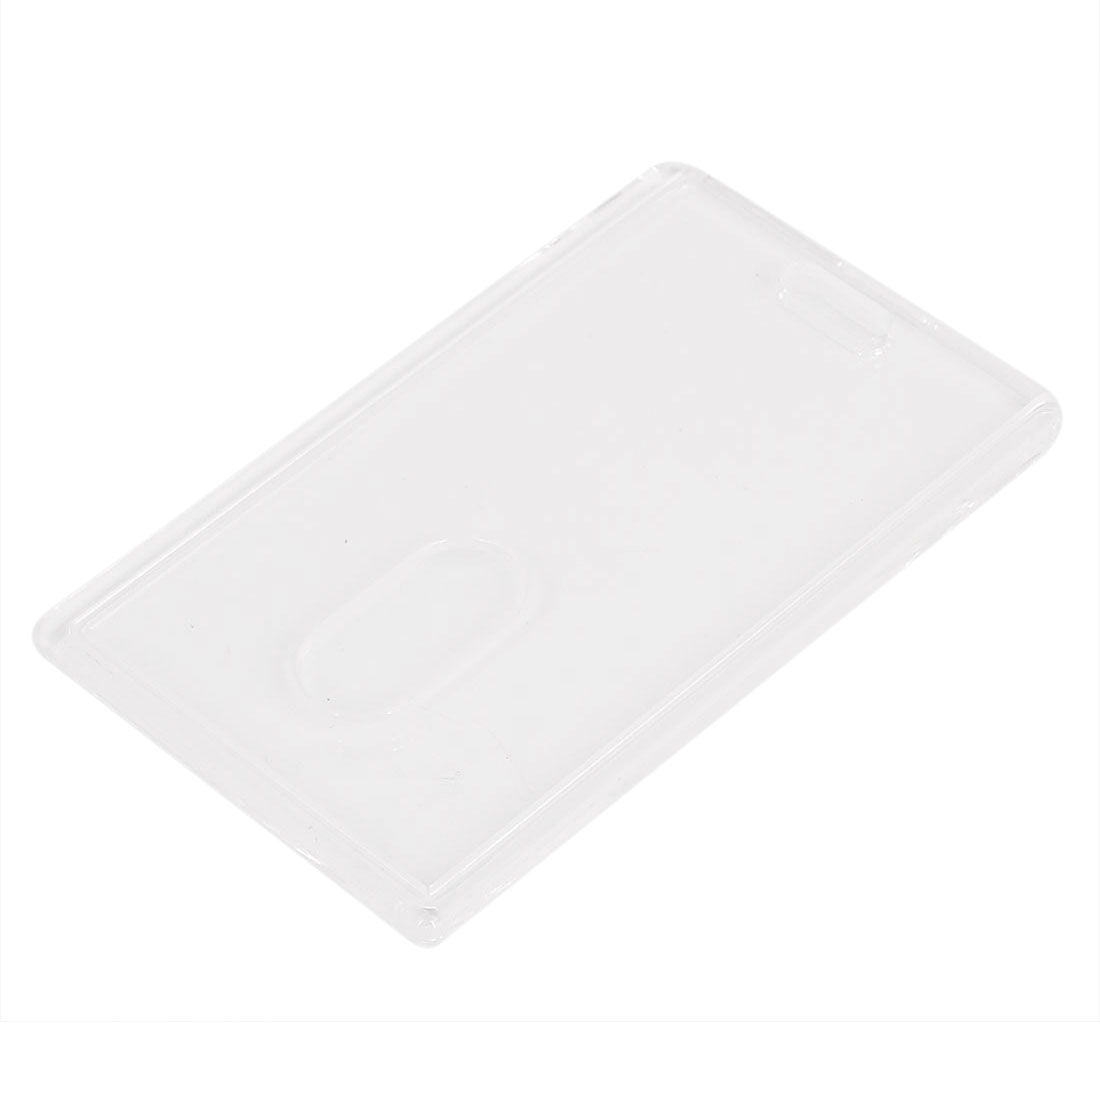 Plastic Vertical School Work 2 Card ID Holder Attachment Top Clear 54mm x 85mm